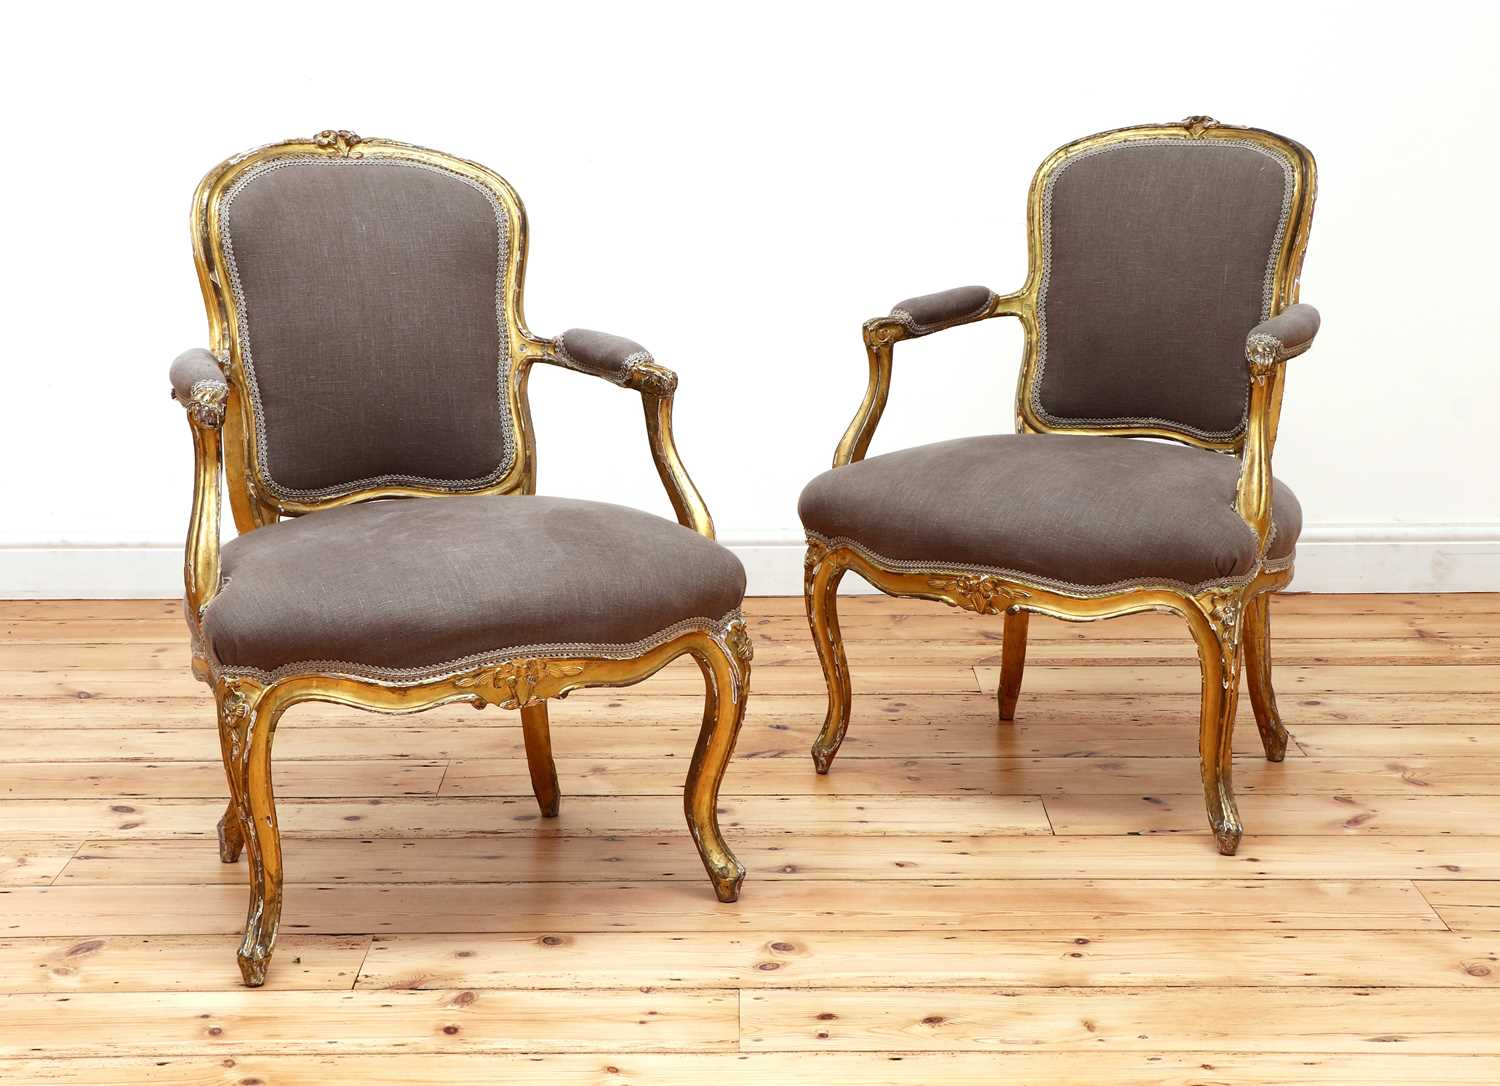 A pair of gilt-framed Louis XV-style armchairs, - Image 2 of 8